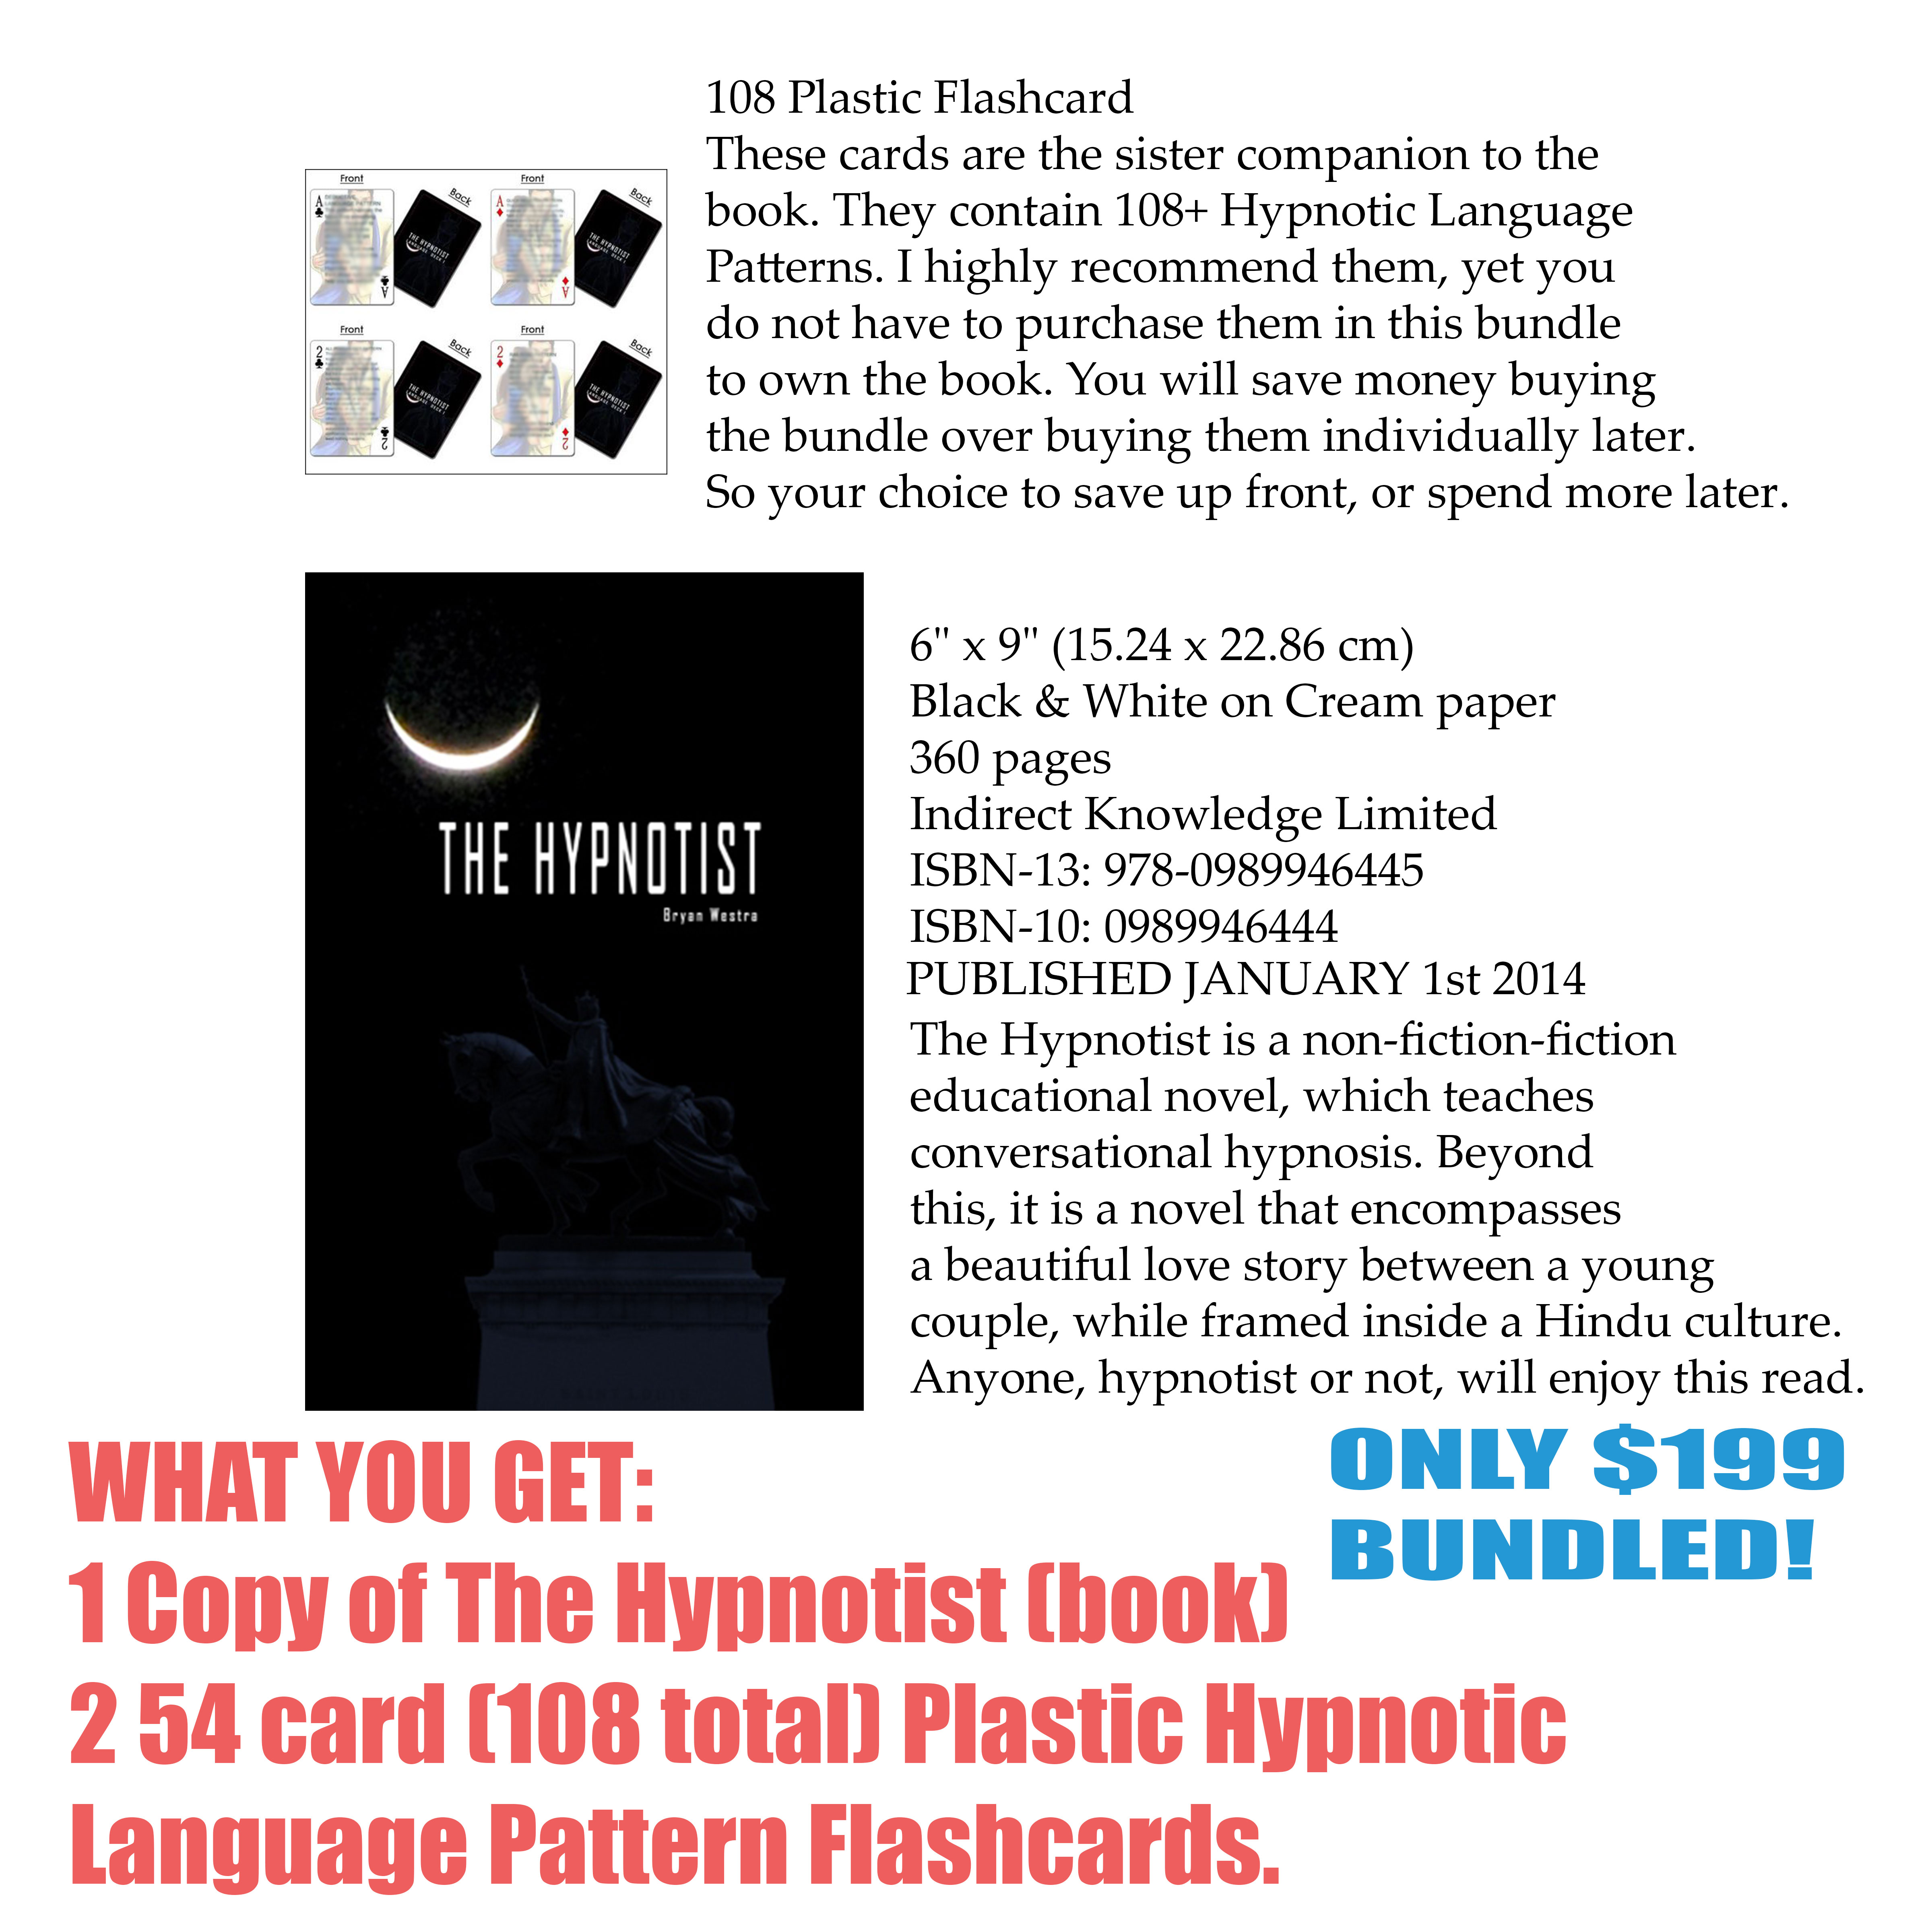 THE HYPNOTIST BUNDLE